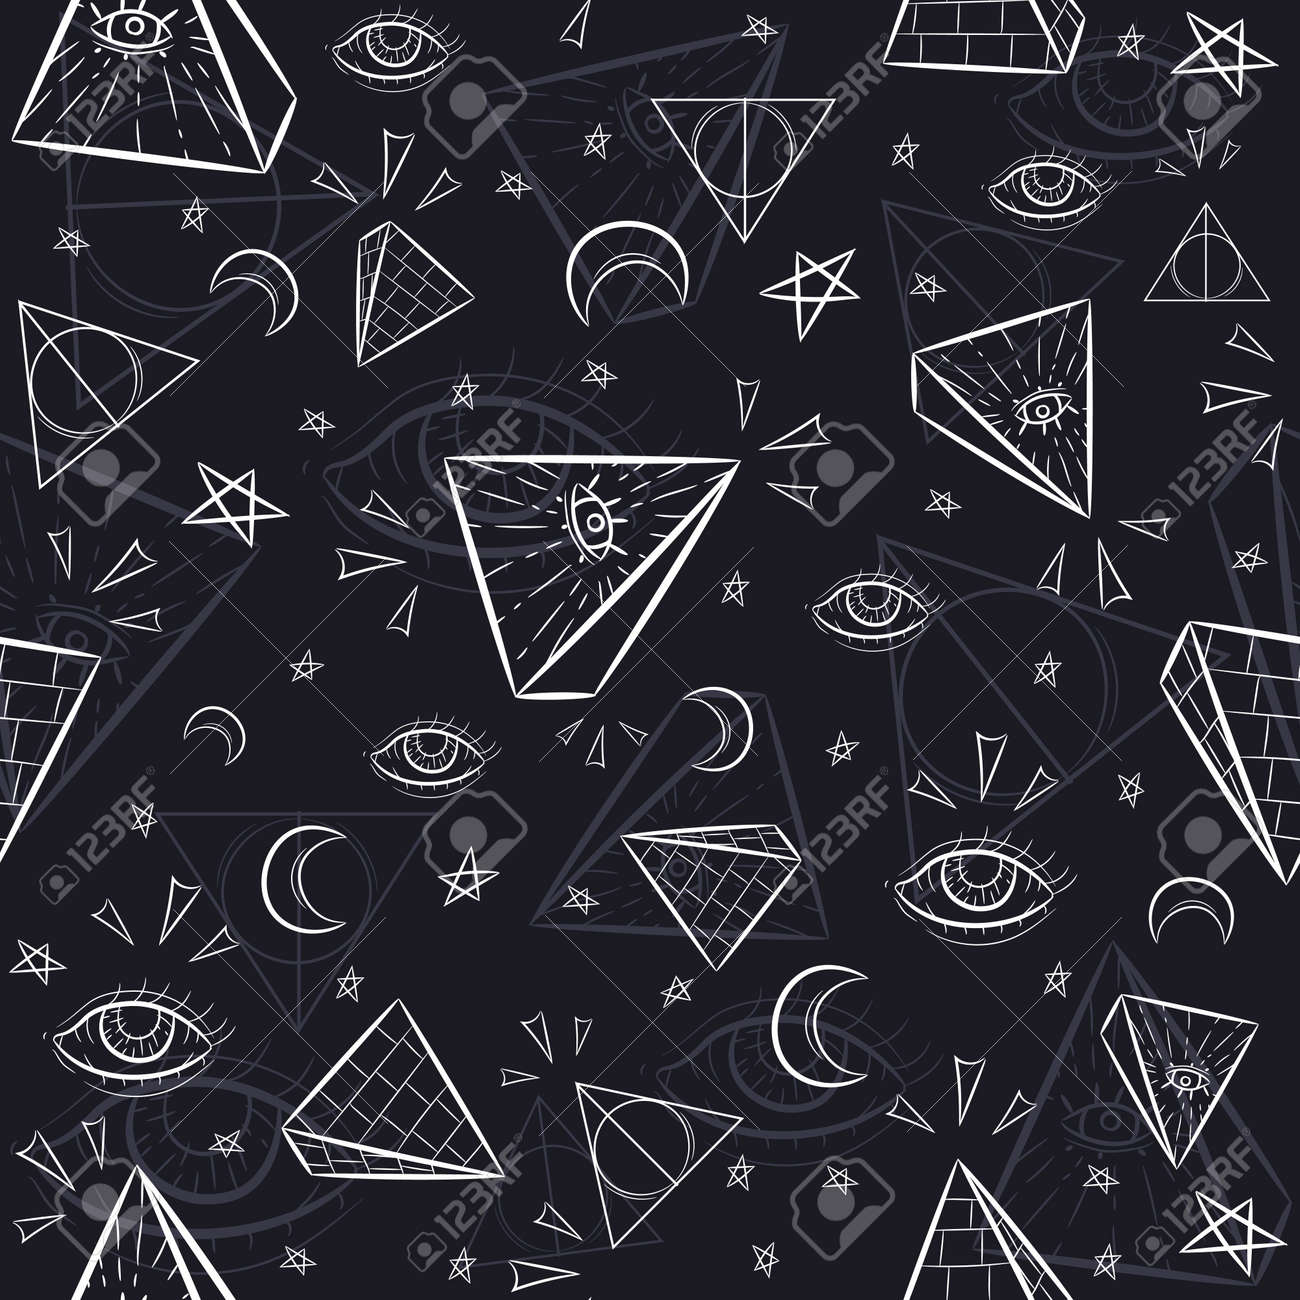 Seamless pattern with illuminati and occult symbols. Repetitive background with pyramids, triangles, the eye of God and celestial objects. - 167232063